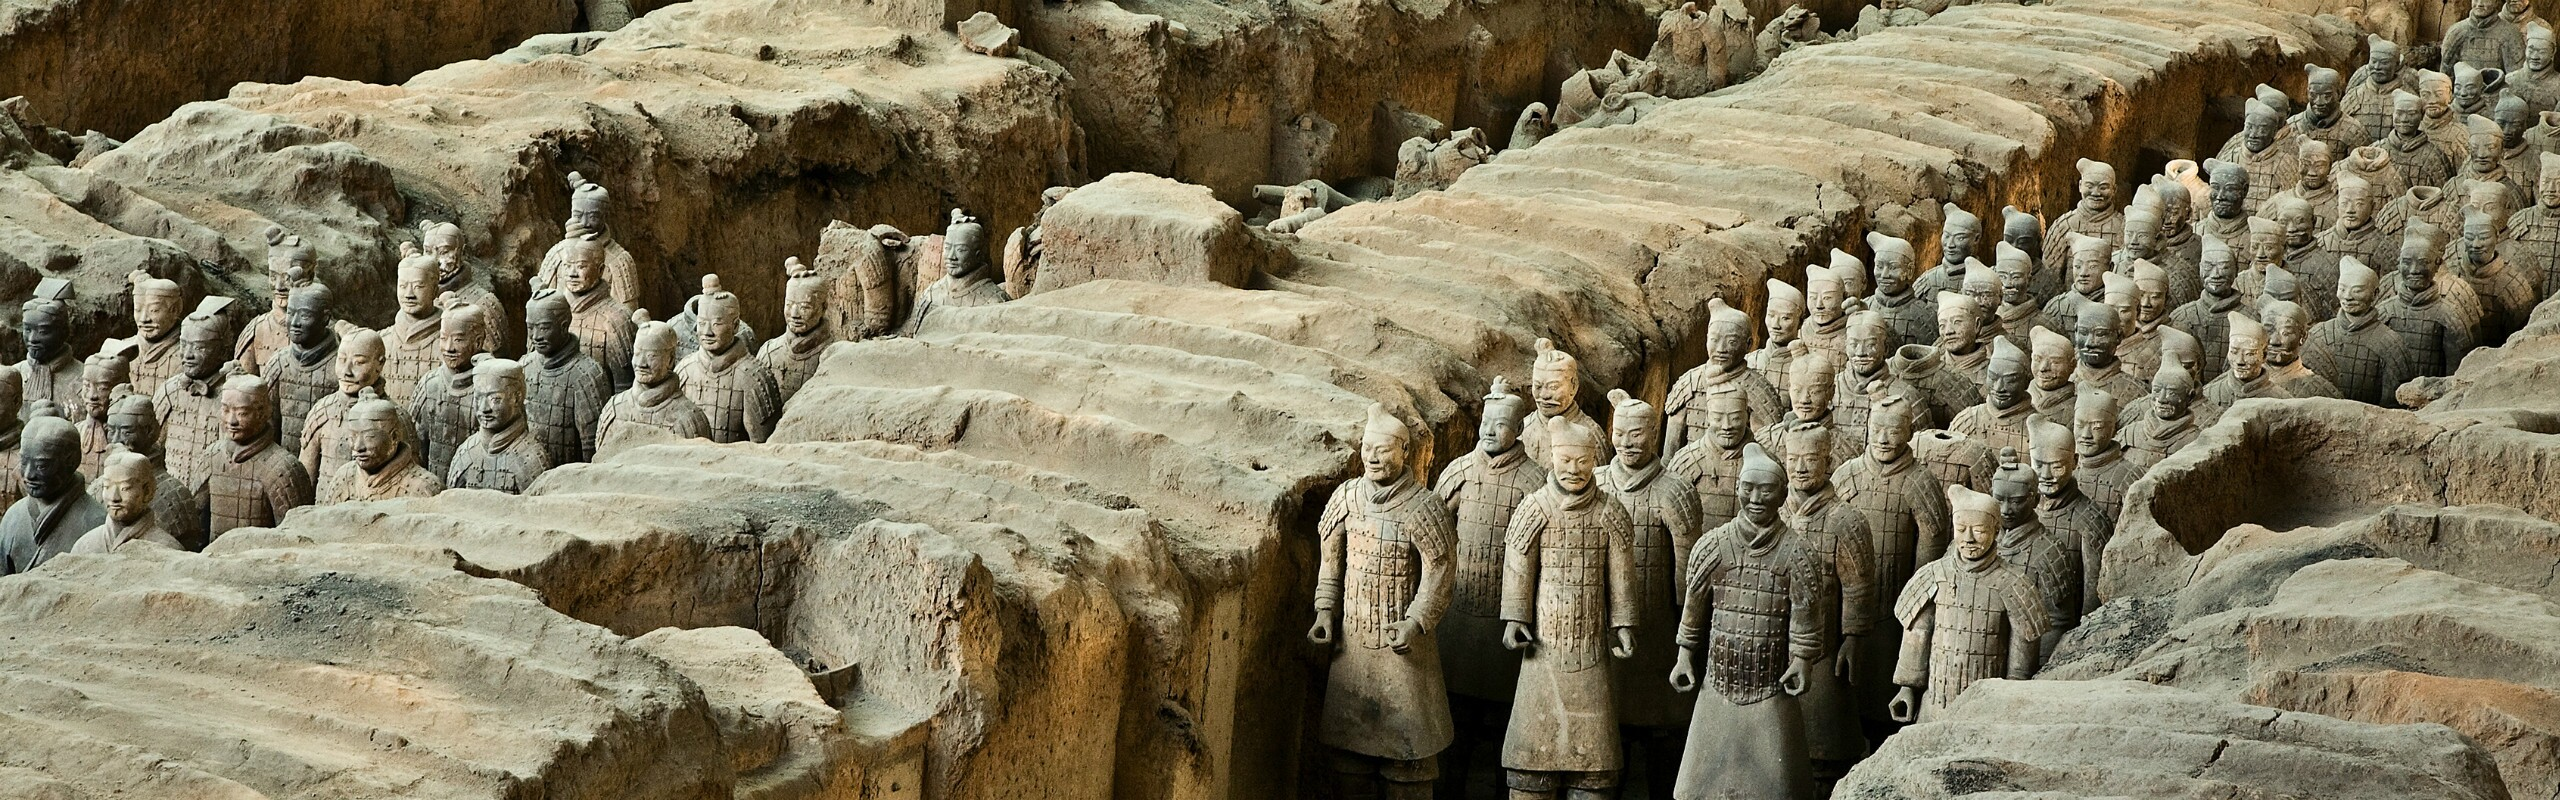 One-Day Round-Trip from Shanghai to Xi'an